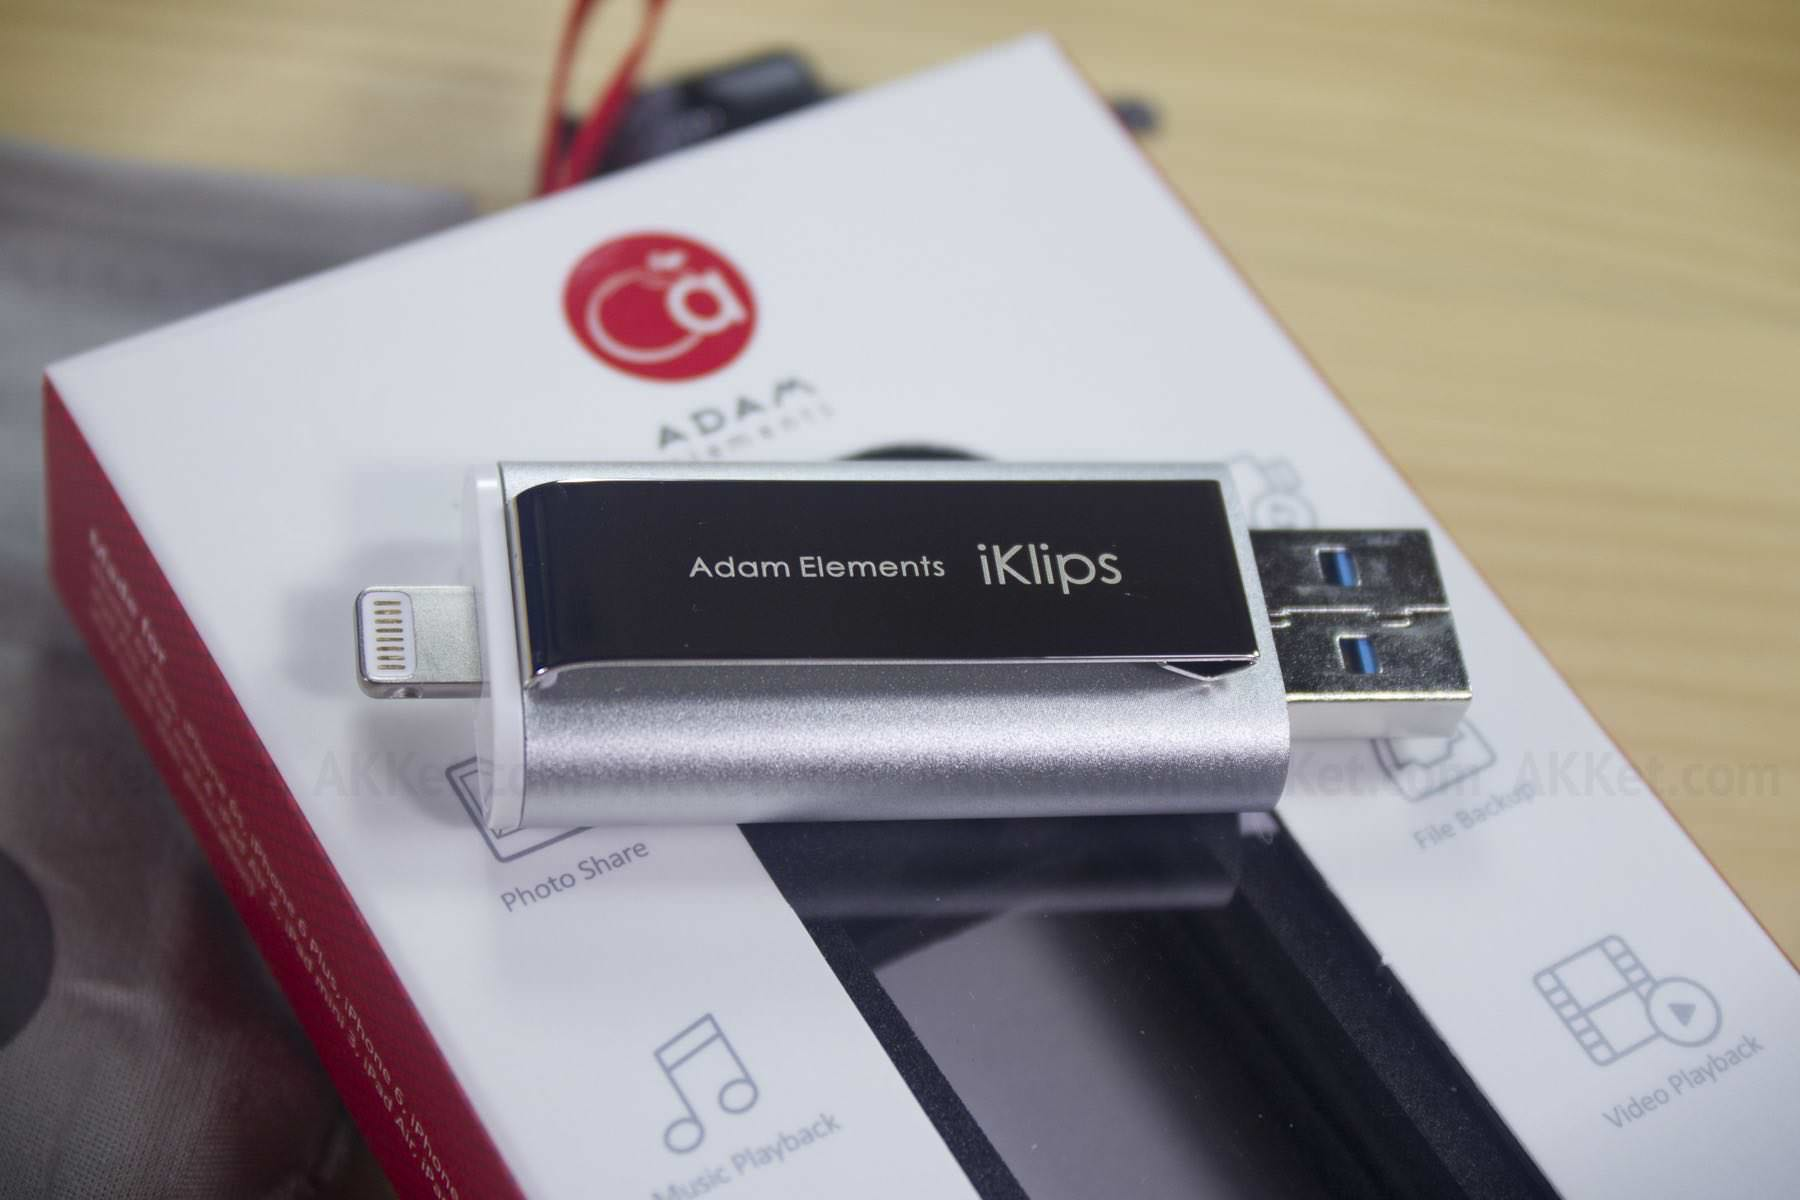 iKlips Adam Elements Lightning Flash Drive Review iPhone iPad iPod Touch Buy Russia 0